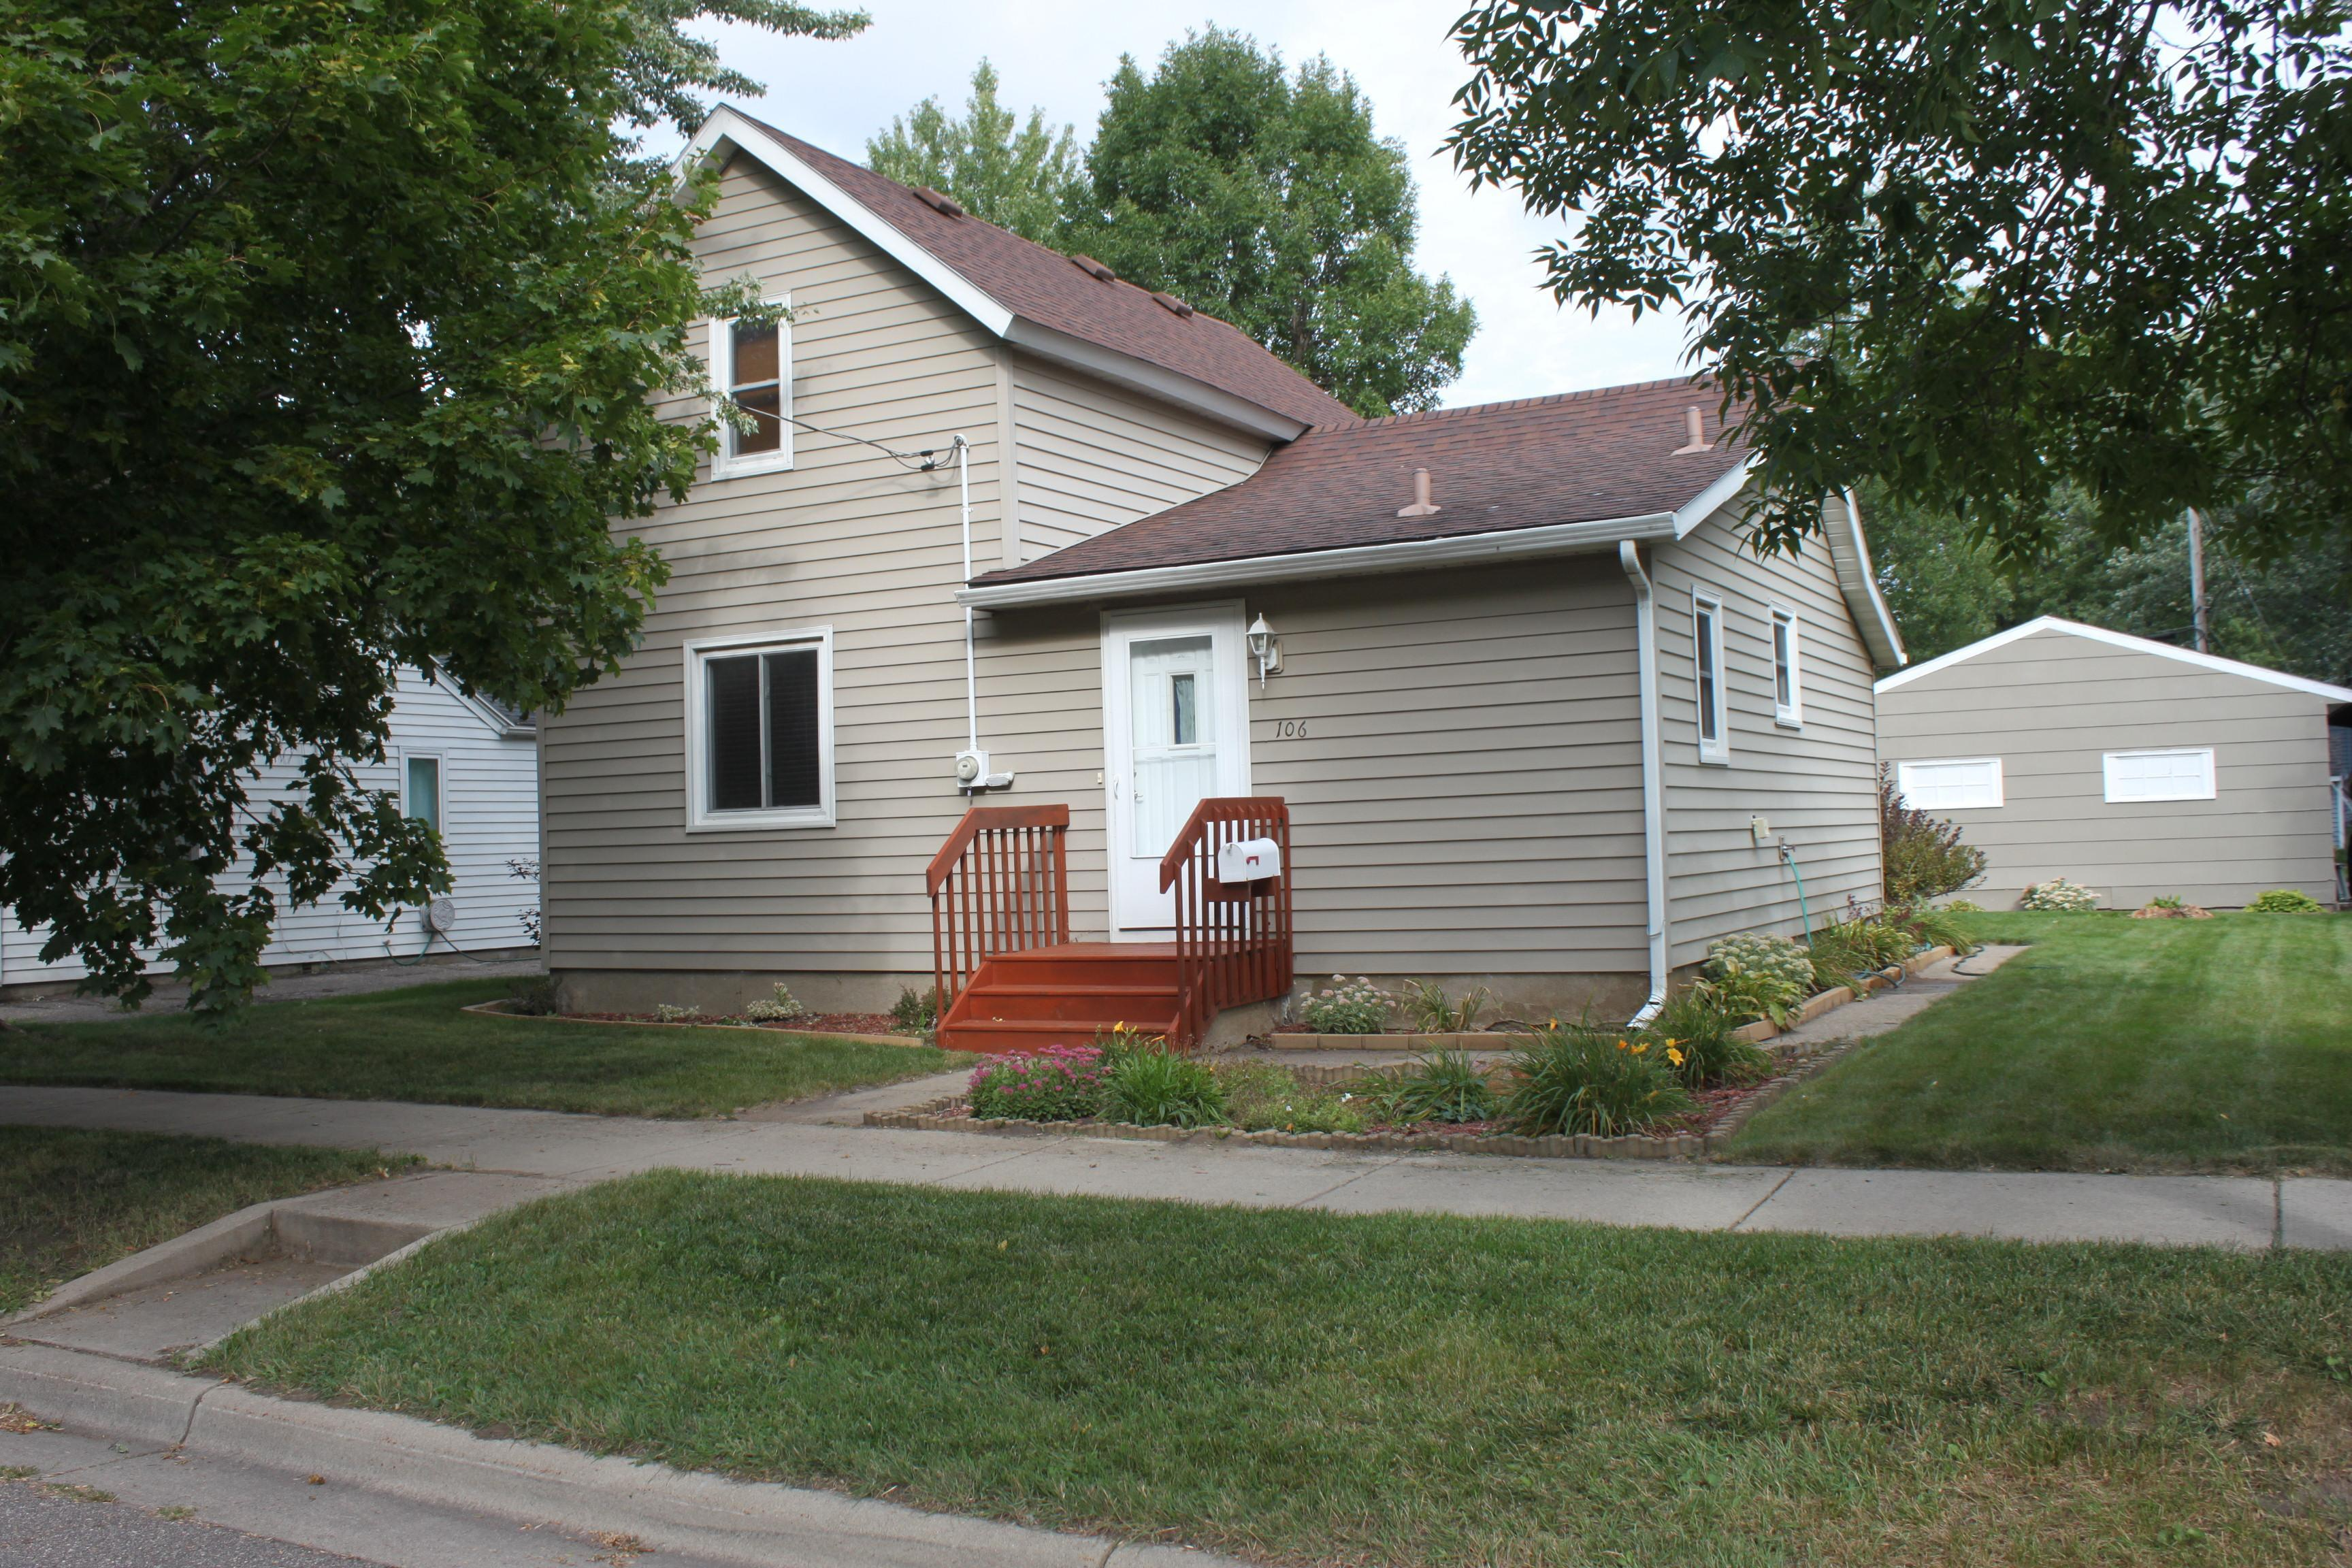 Tasteful warm and well appointed home with oak 6 panel doors, tile and laminate wood floors, recessed lighting and ceiling fan lights (all LEDs), in closet lighting, and 20x12 deck overlooking back yard. Landscaping with perennials and mature trees for shade. 2 car detached, heated garage, plus carport and large concrete drive for boat, RV, toy(s). Metal siding, vinyl windows, high efficiency gas FA heat, and main floor laundry. Neat and well maintained affordable home.